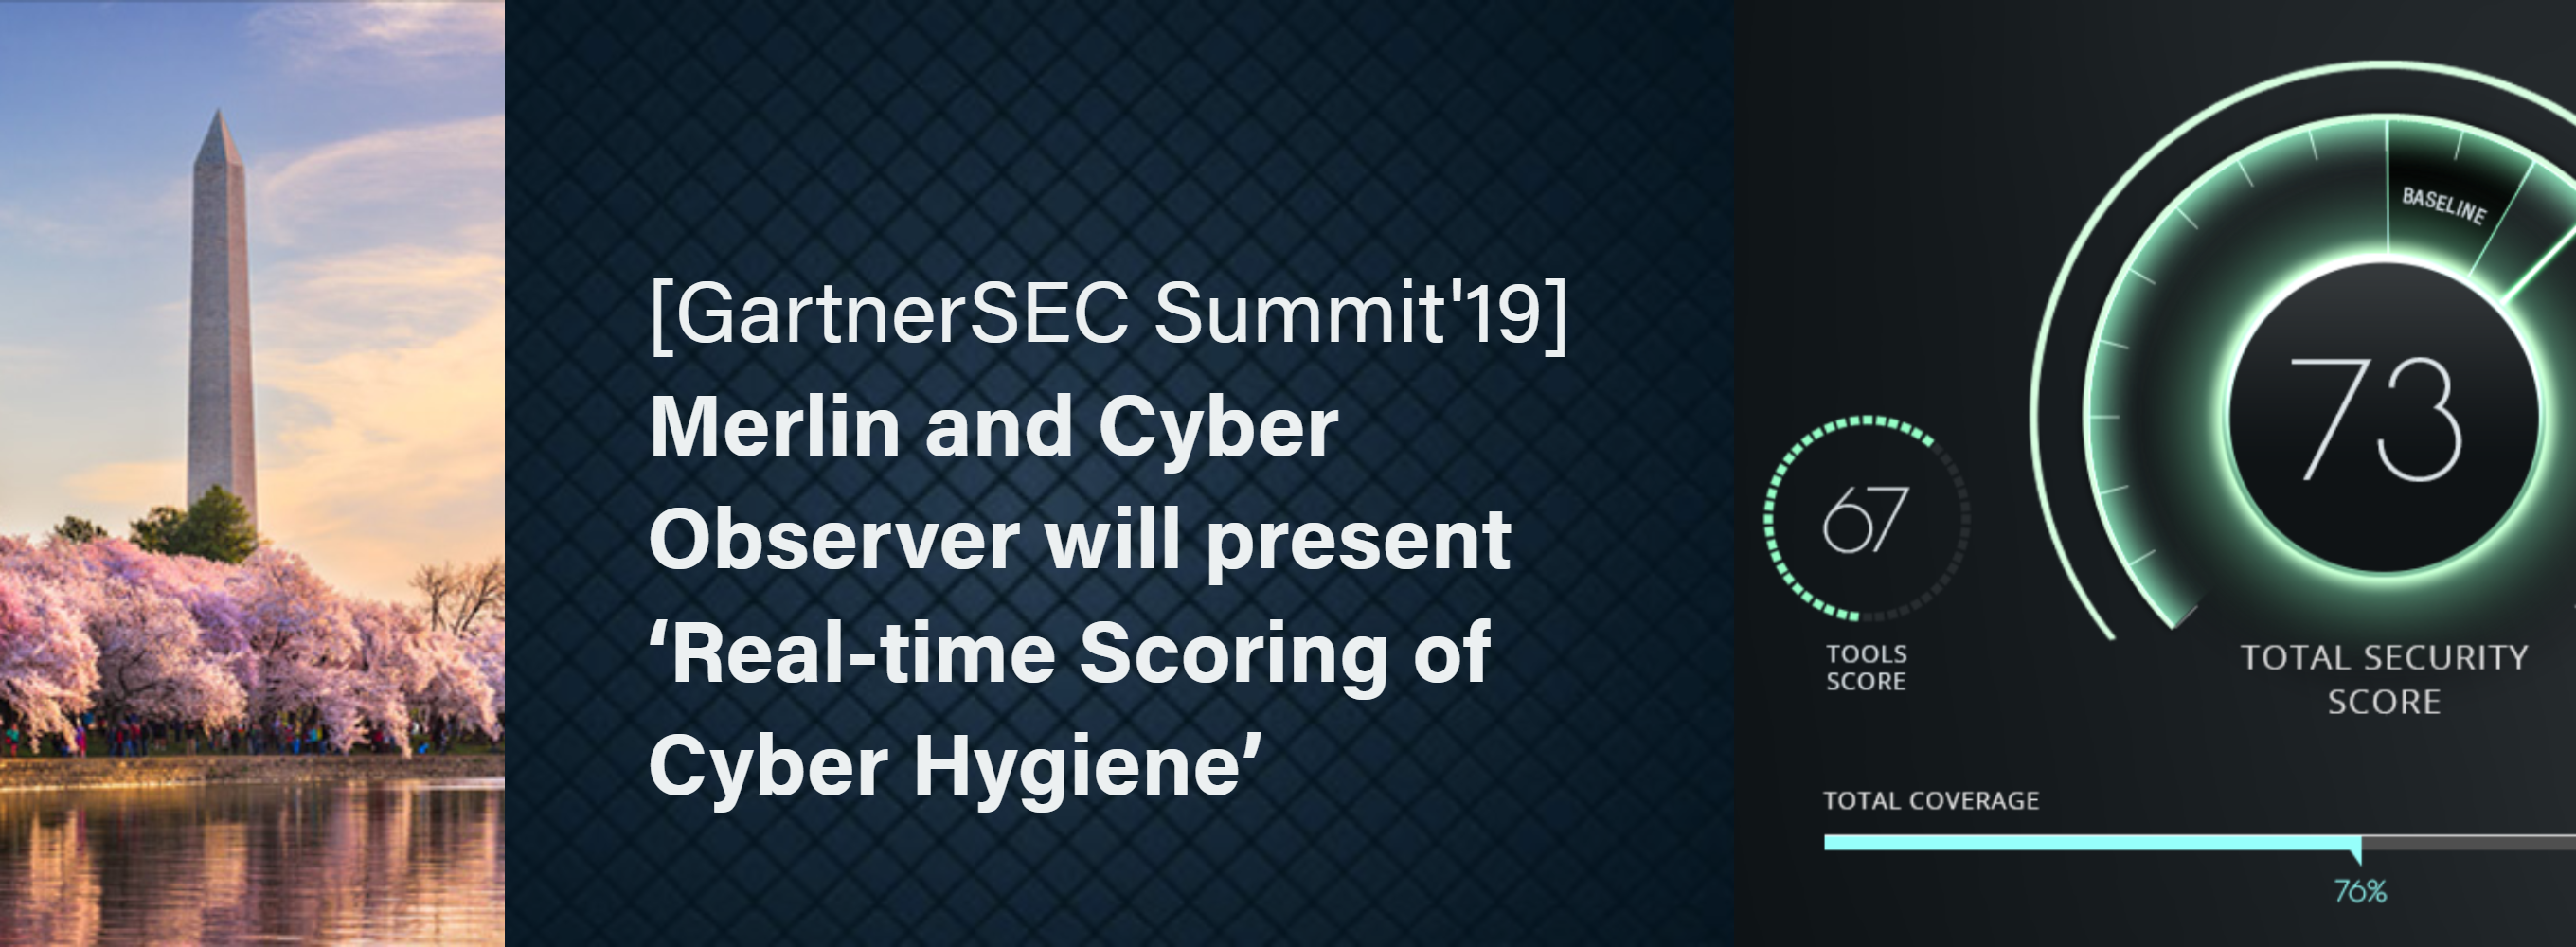 cyber observer and merlin at GartnerSEC Cyber Hygiene Scoring